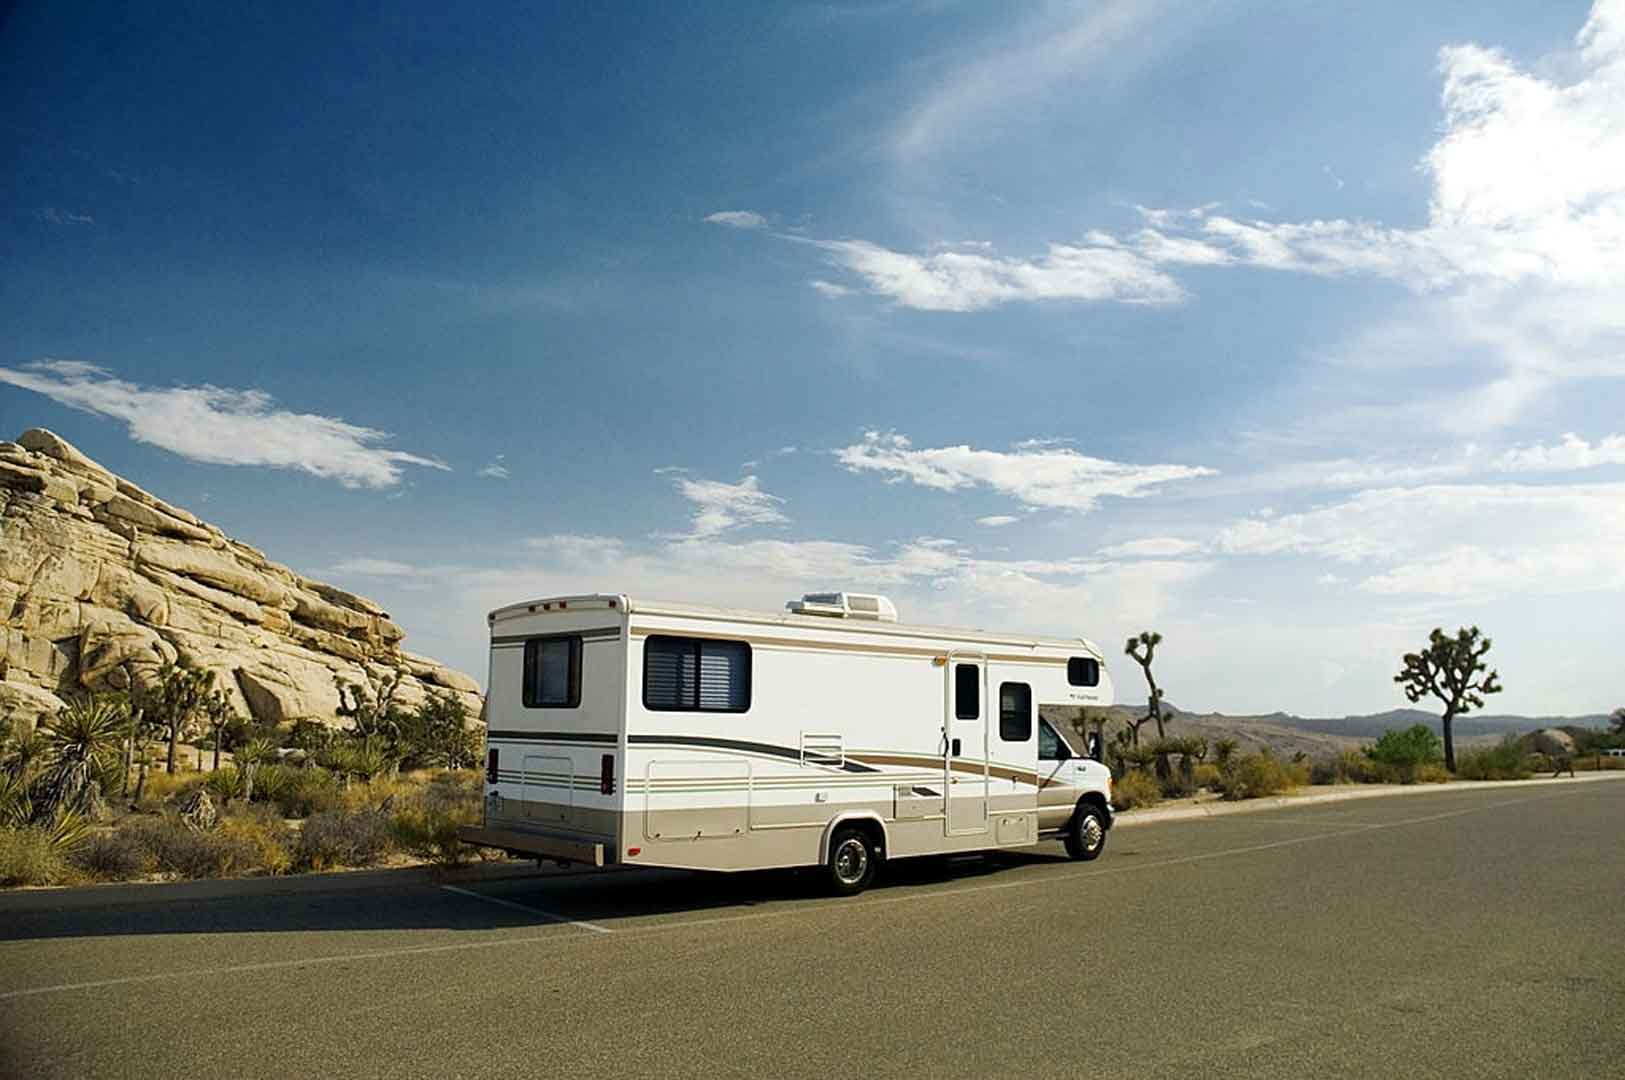 Can Solar Panels Power An RV Air Conditioner?